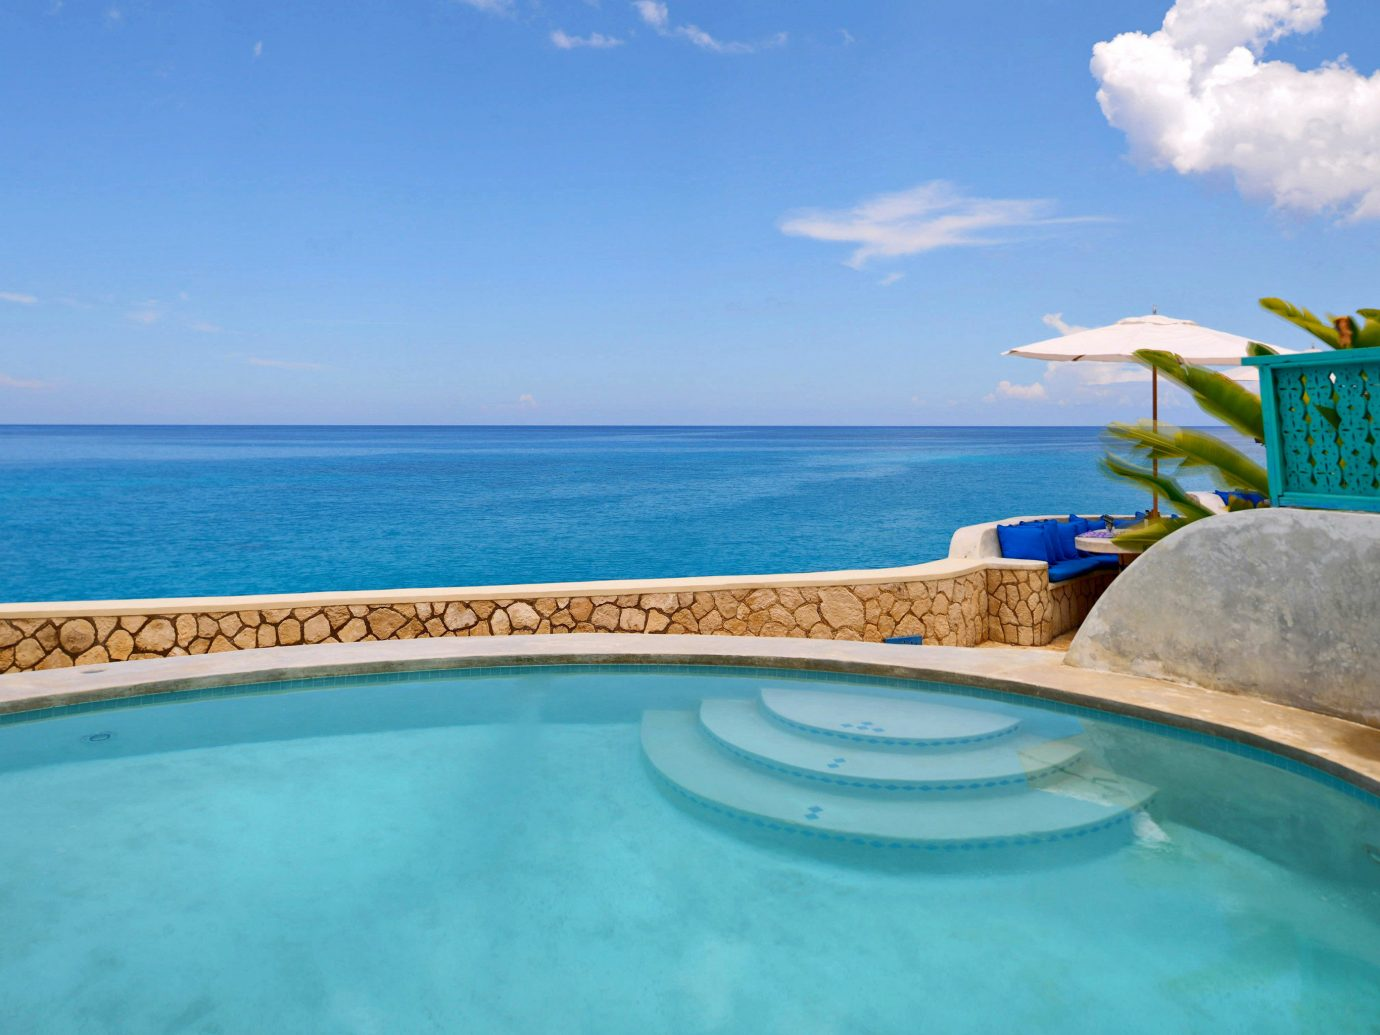 Luxury Pool Romance Romantic Scenic views Trip Ideas Tropical Waterfront sky water outdoor swimming pool property caribbean vacation Nature Sea estate Ocean Villa Lagoon shore Resort swimming